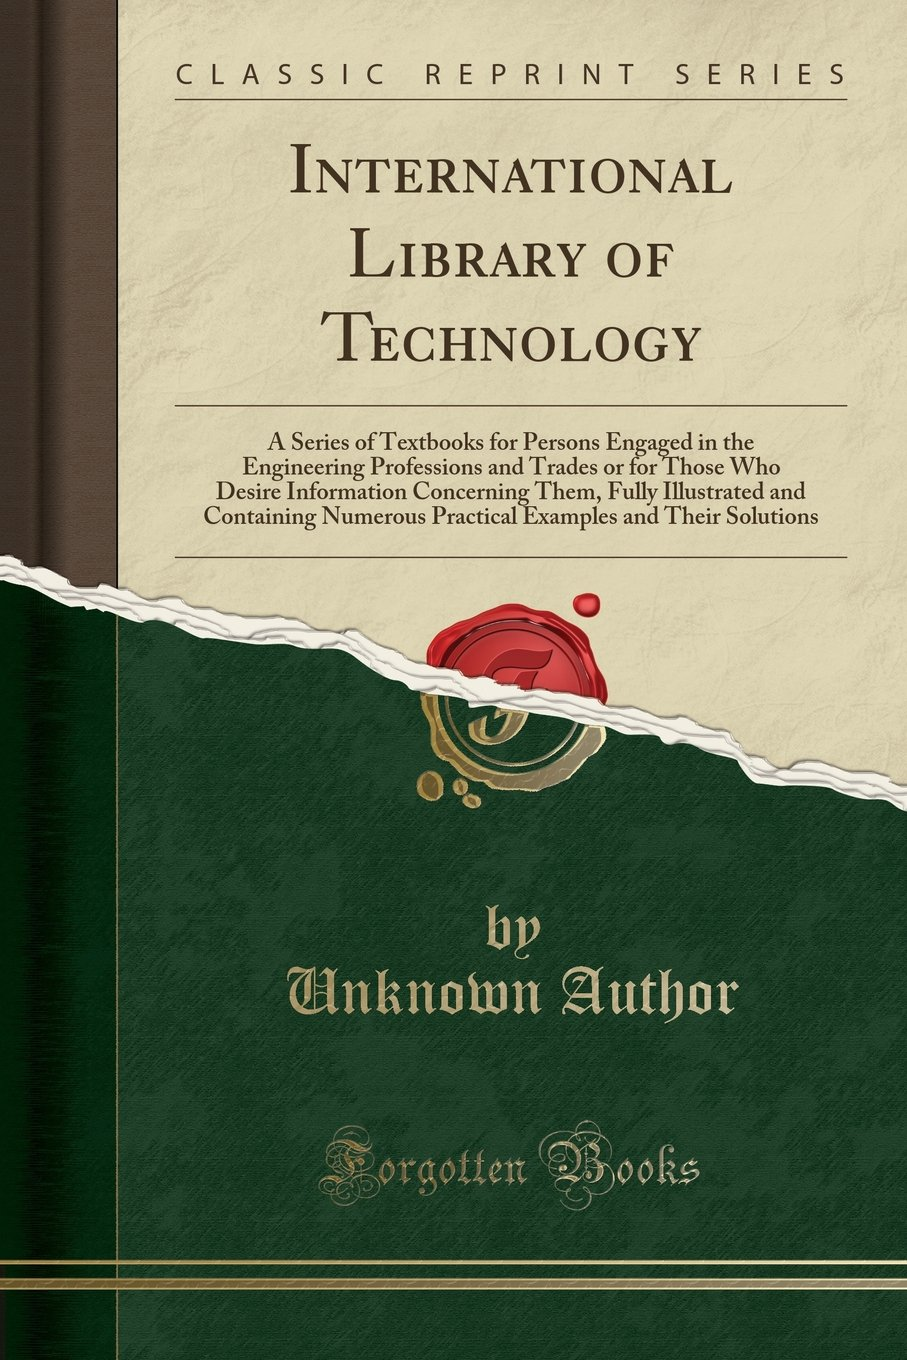 Download International Library of Technology: A Series of Textbooks for Persons Engaged in the Engineering Professions and Trades or for Those Who Desire ... Practical Examples and Their Solutions pdf epub